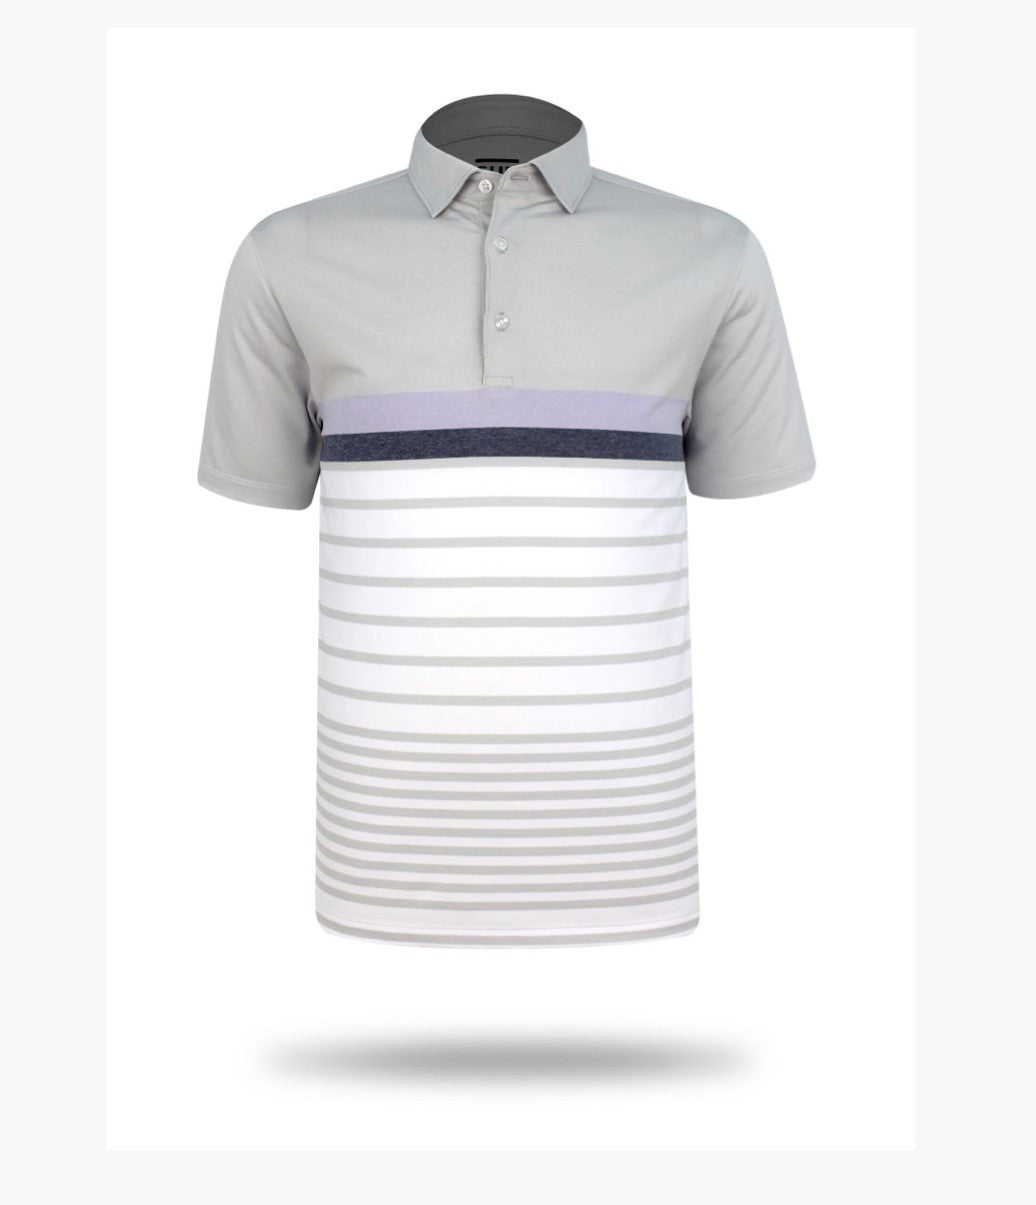 Sub 70 Tour Classic Polo Stripe #20 Grey/Mauve